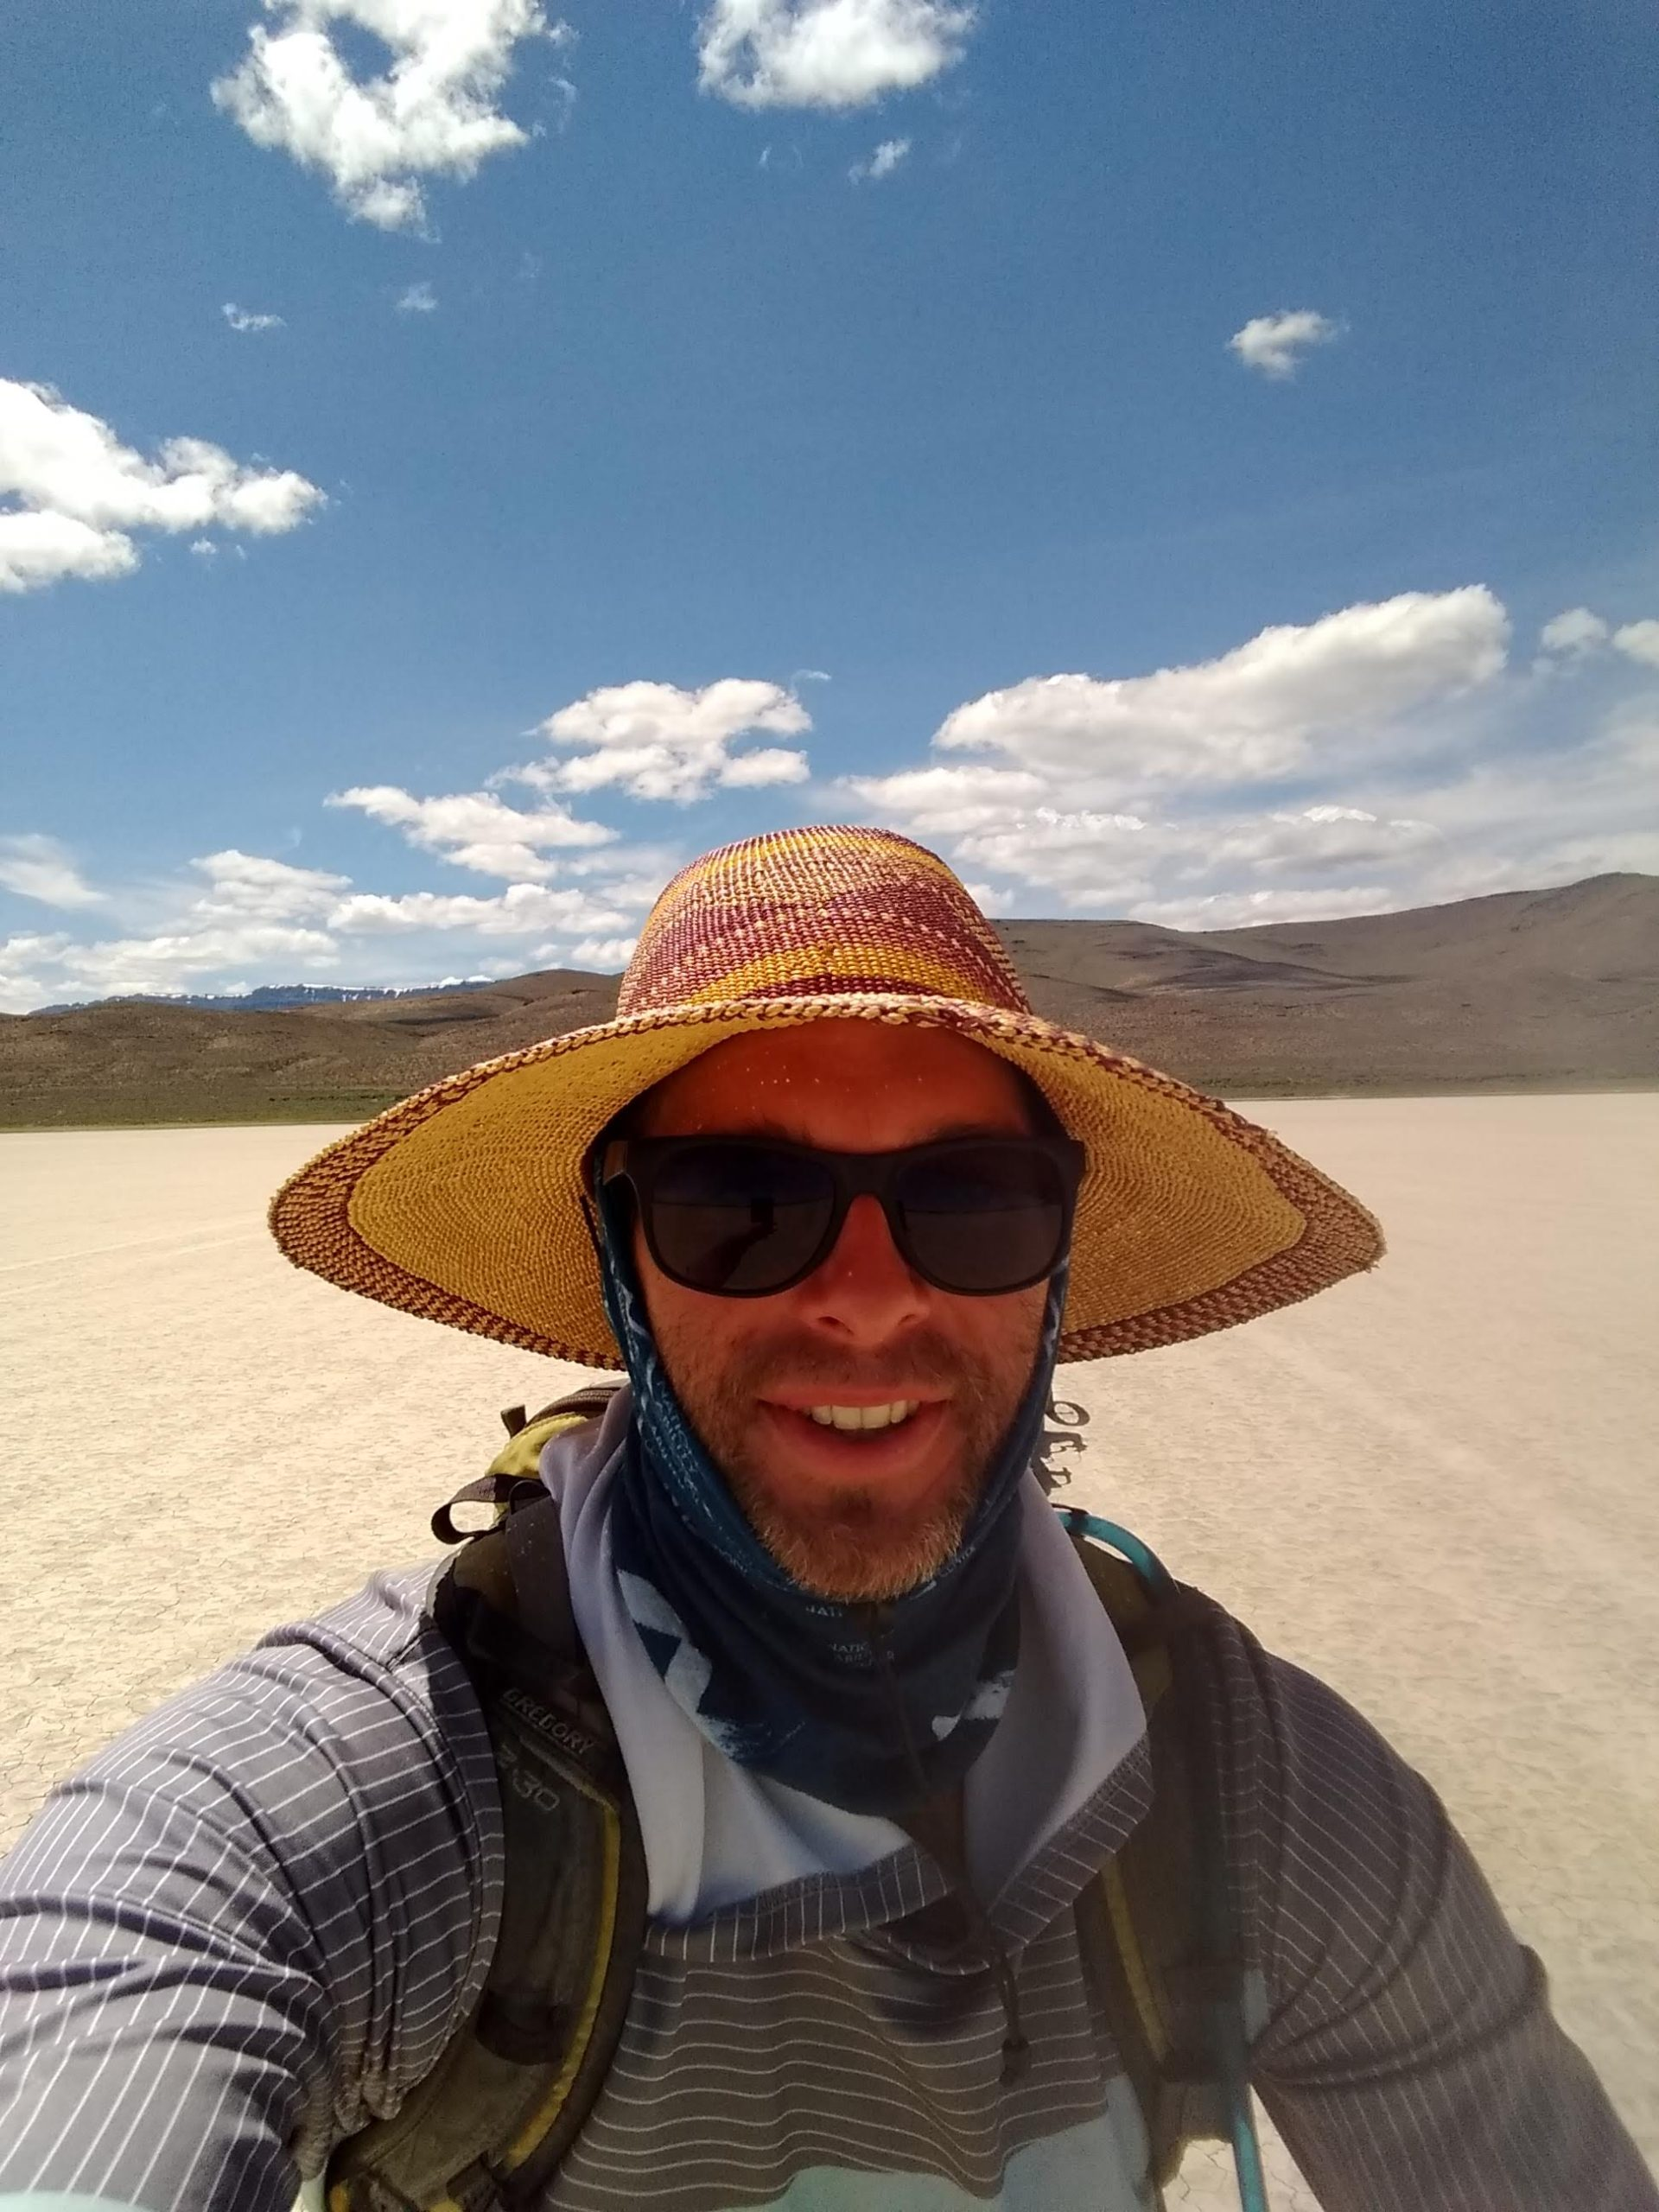 matt in all his sun protective clothing at the alvord desert